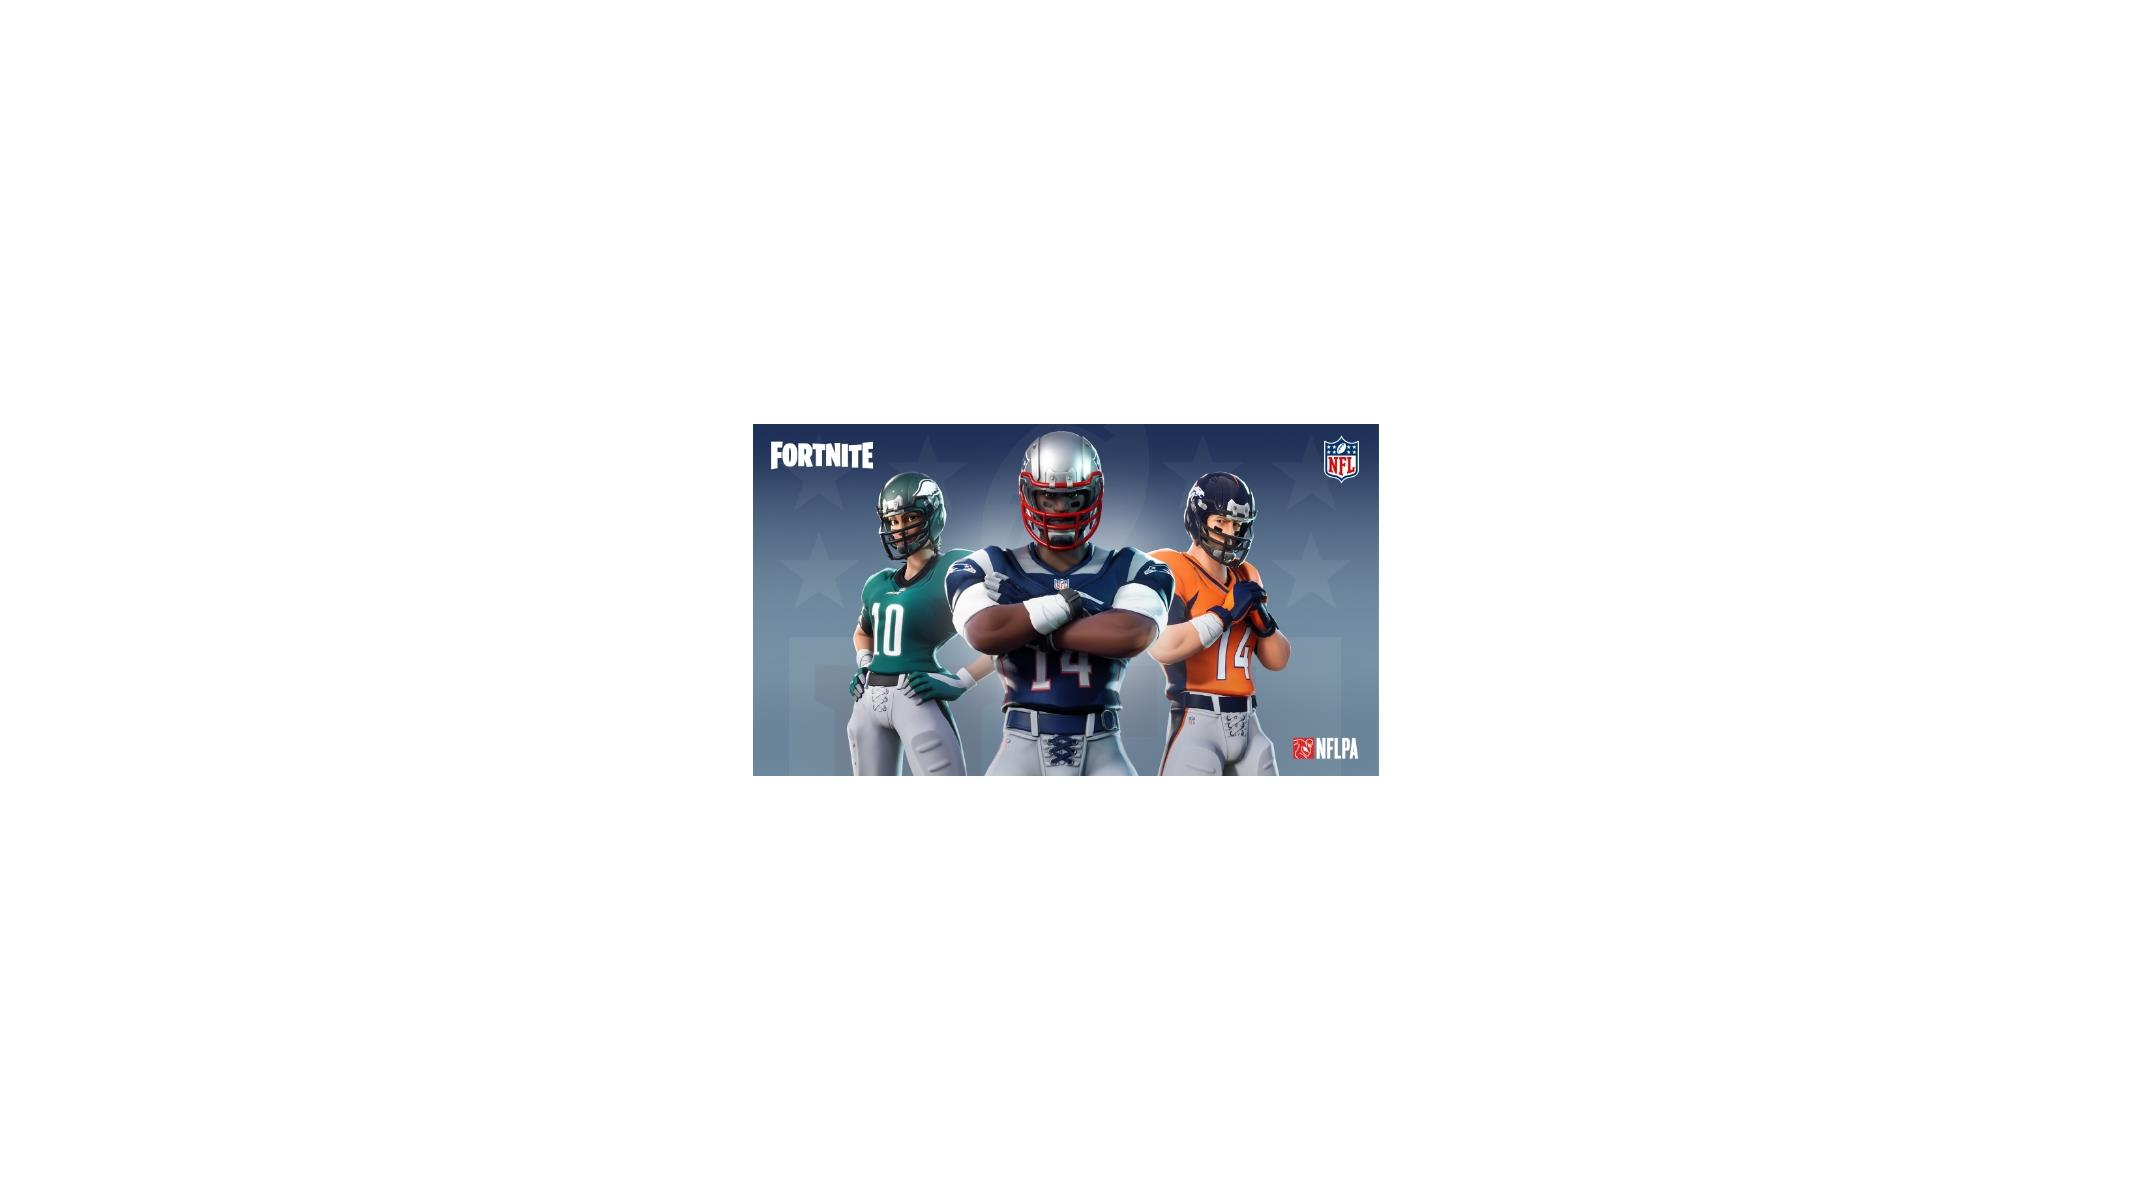 eb8354a407d Fortnite Hits The Gridiron With NFL Jersey Skins, Gear And Emotes |  HotHardware